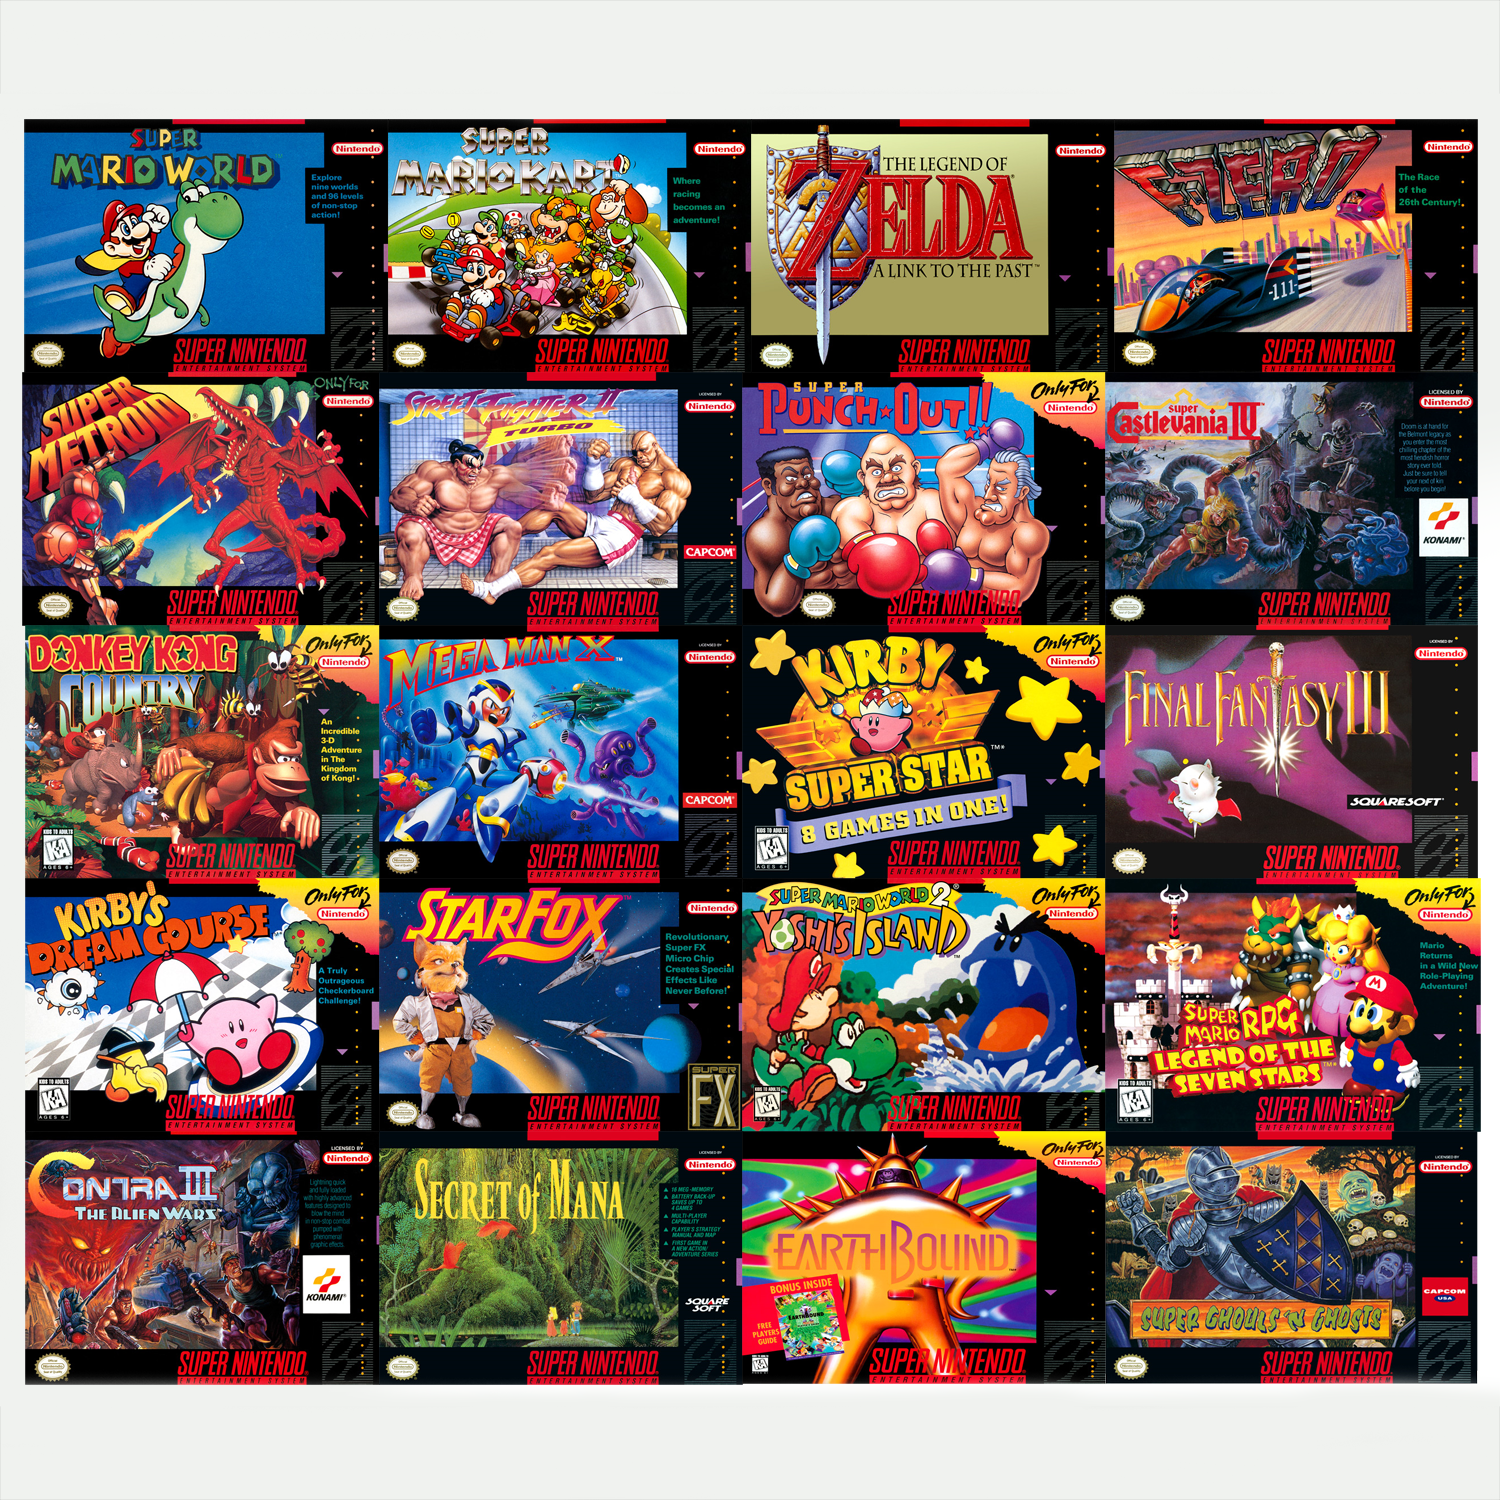 21 games on snes classic